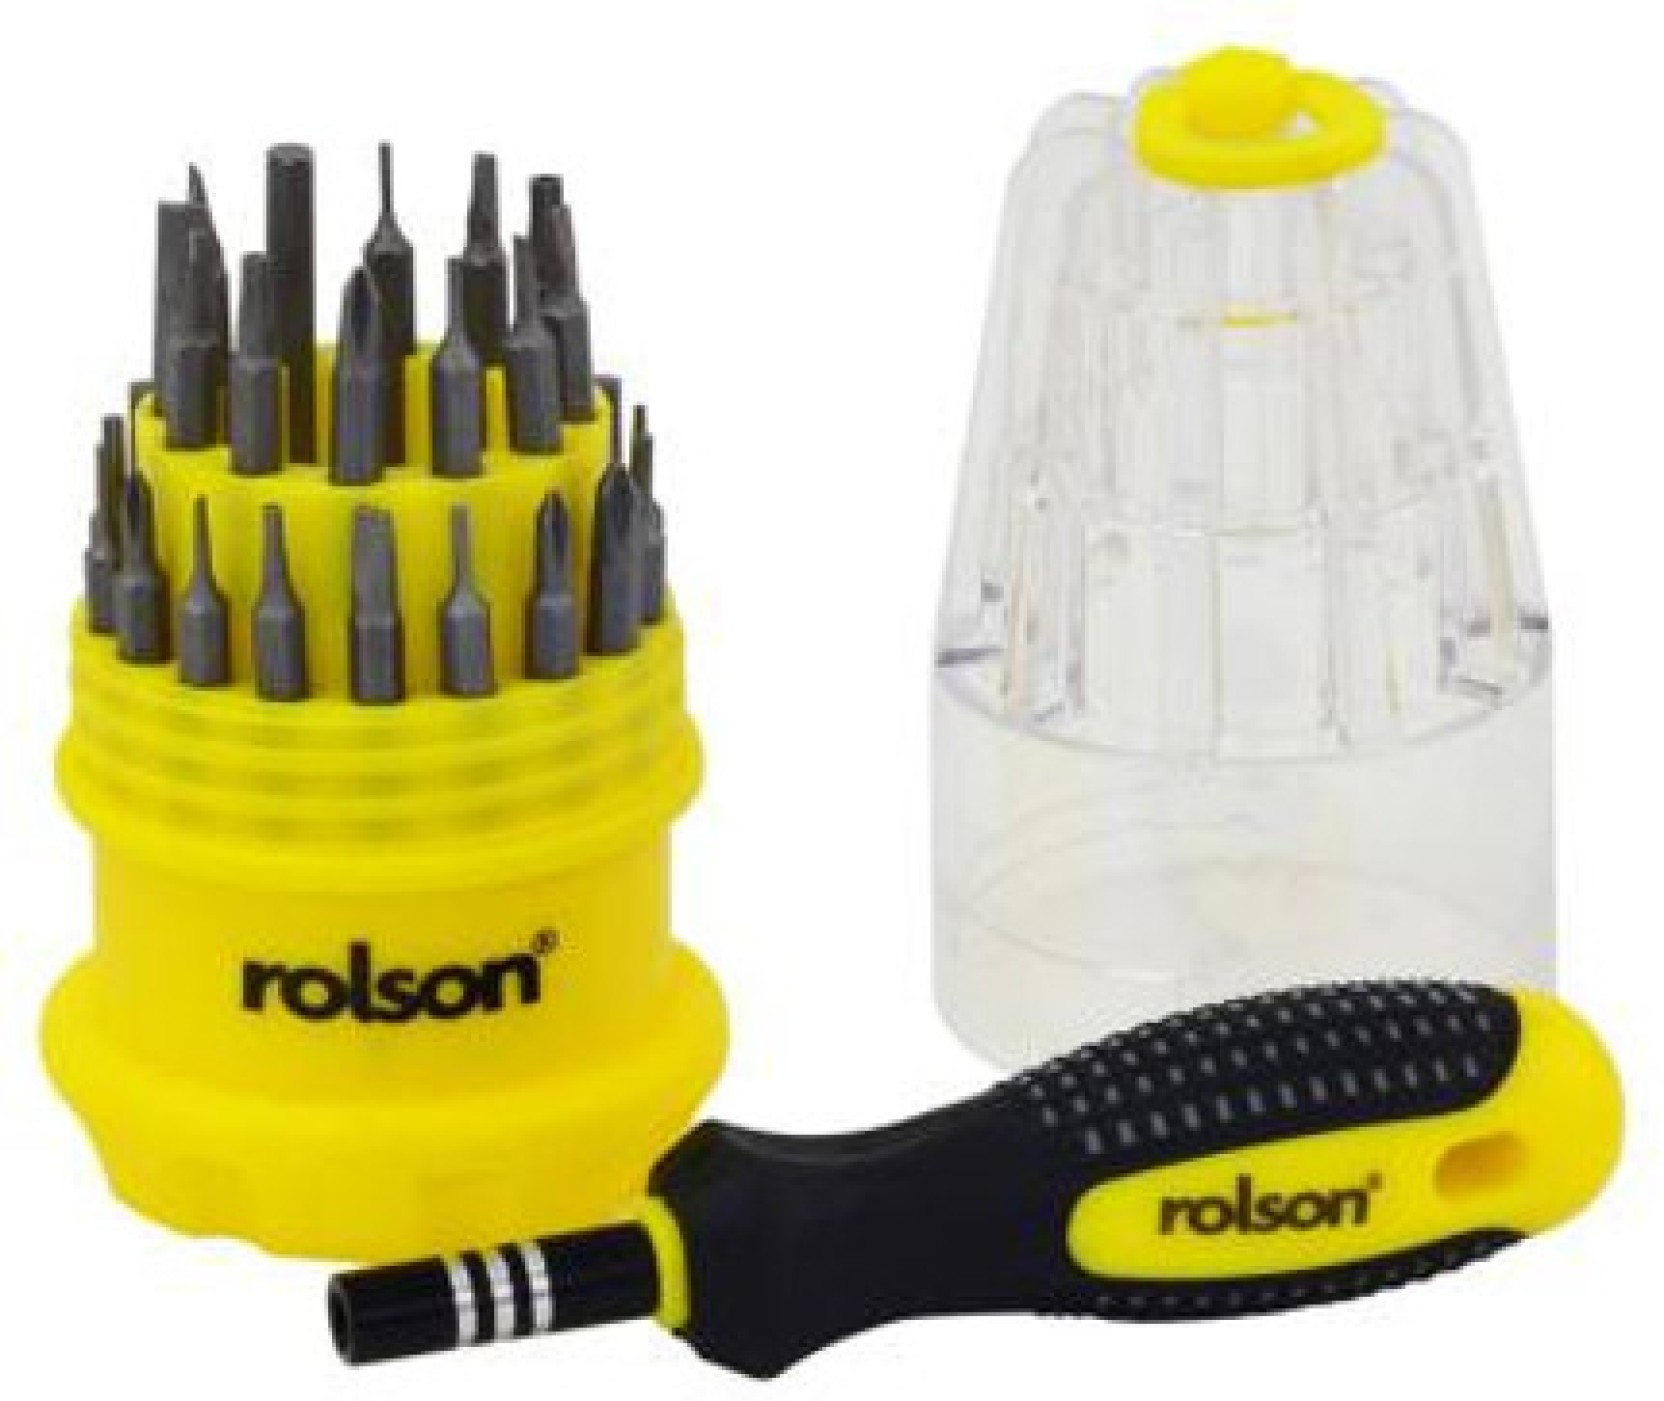 rolson 28227 screwdriver bit set price in india buy rolson 28227 screwdrive. Black Bedroom Furniture Sets. Home Design Ideas